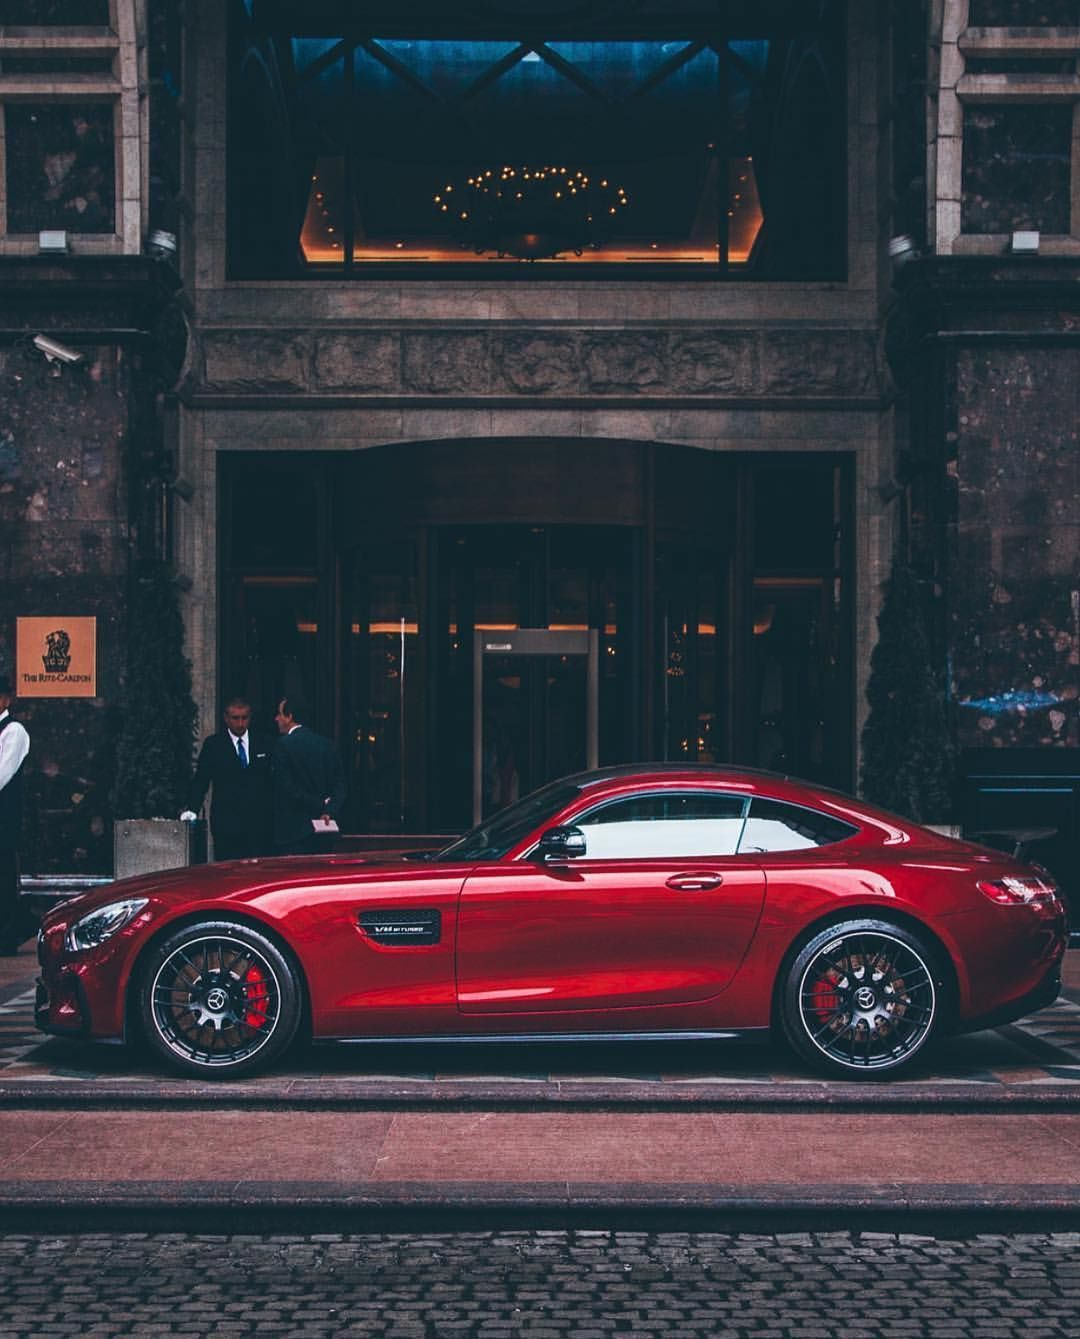 Mercedes Amg Gts With Images Mercedes Benz Amg Mercedes Amg